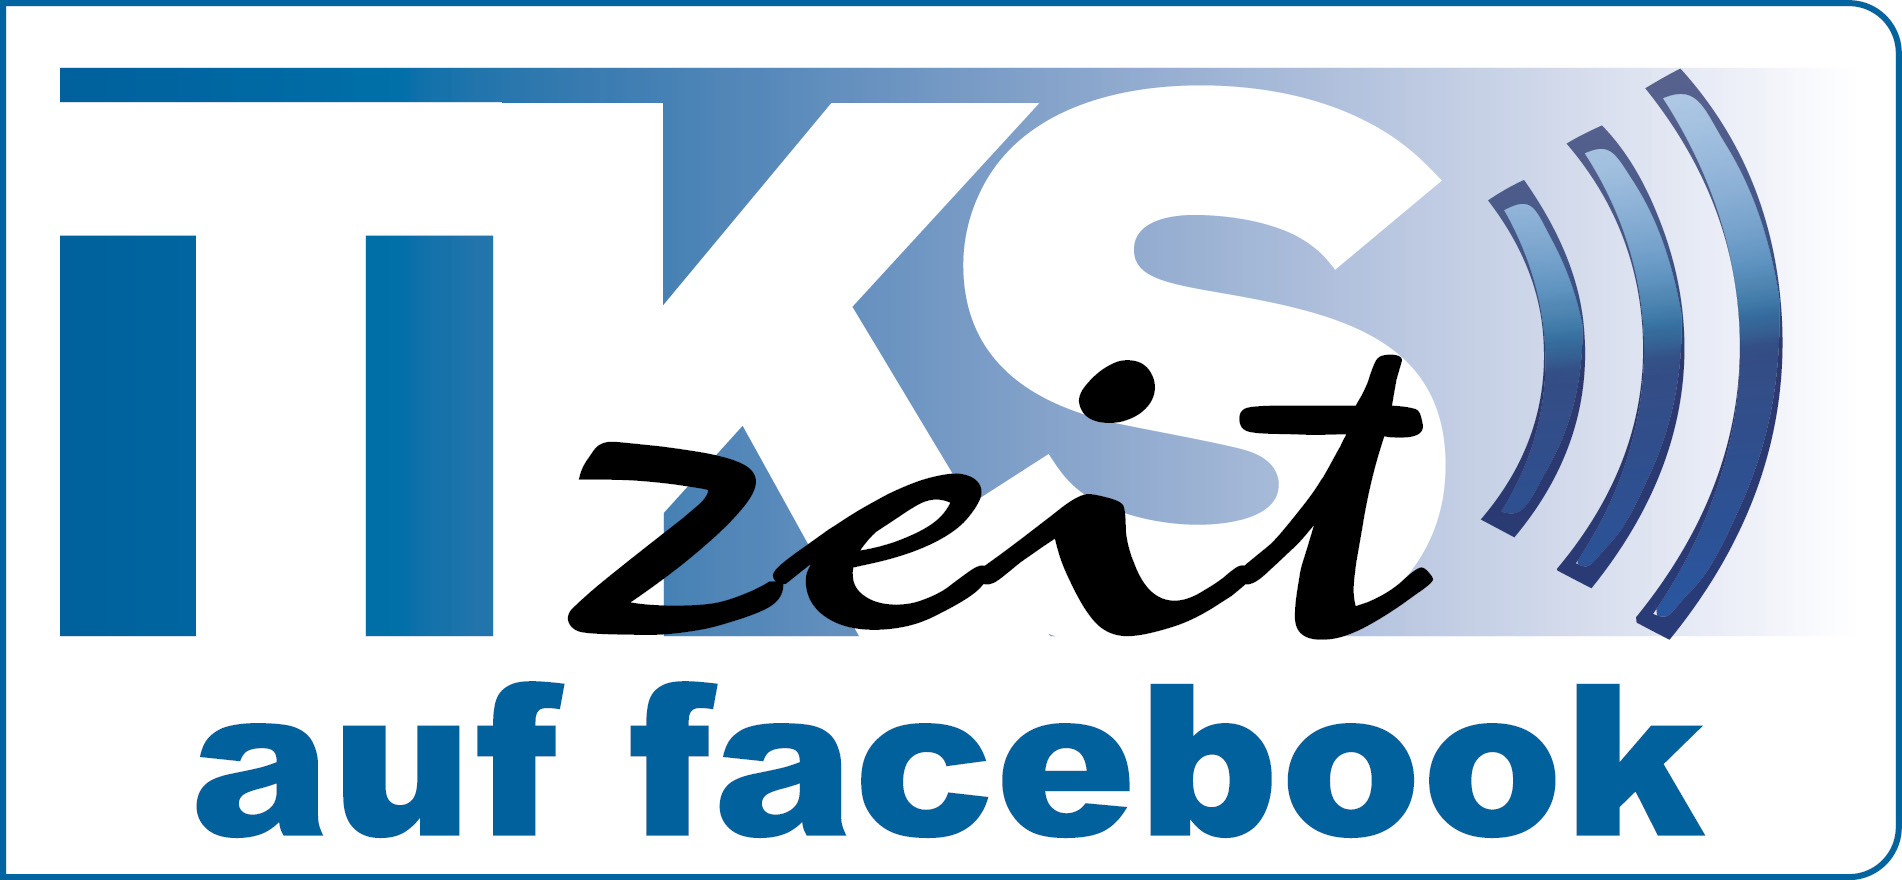 tkszeit Logo facebook 2019